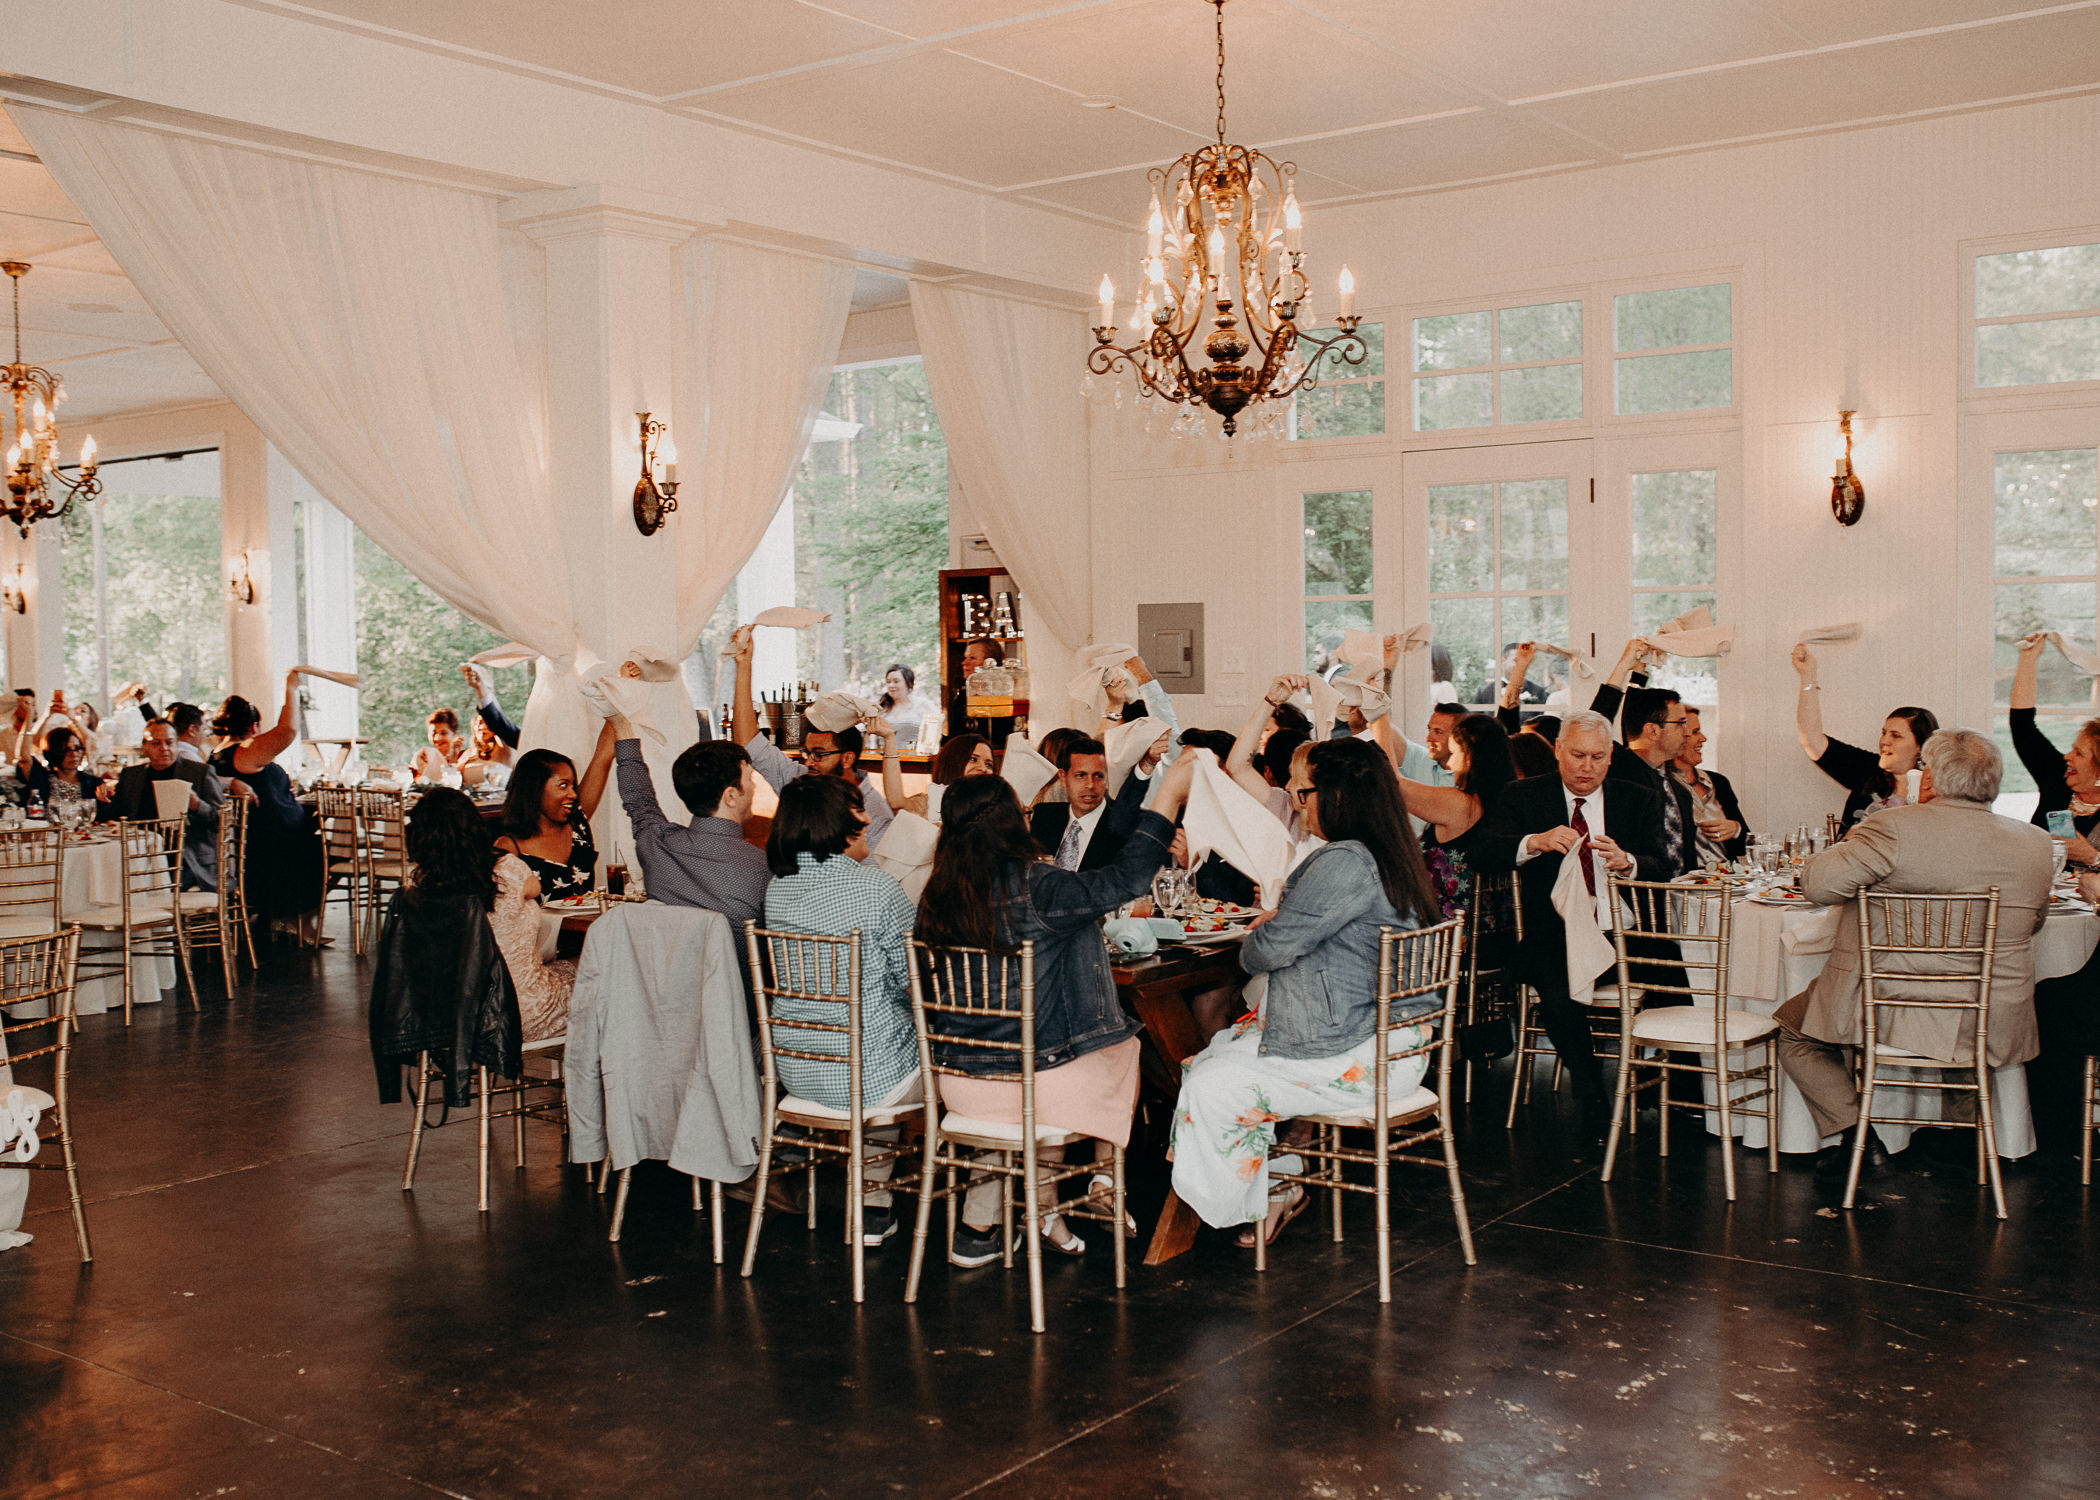 59  - Little River Farms - first look - Atlanta - Wedding Venue - Atlanta Wedding Photographer - Georgia weddings details wedding dress shoes gather groom bridal party .jpg